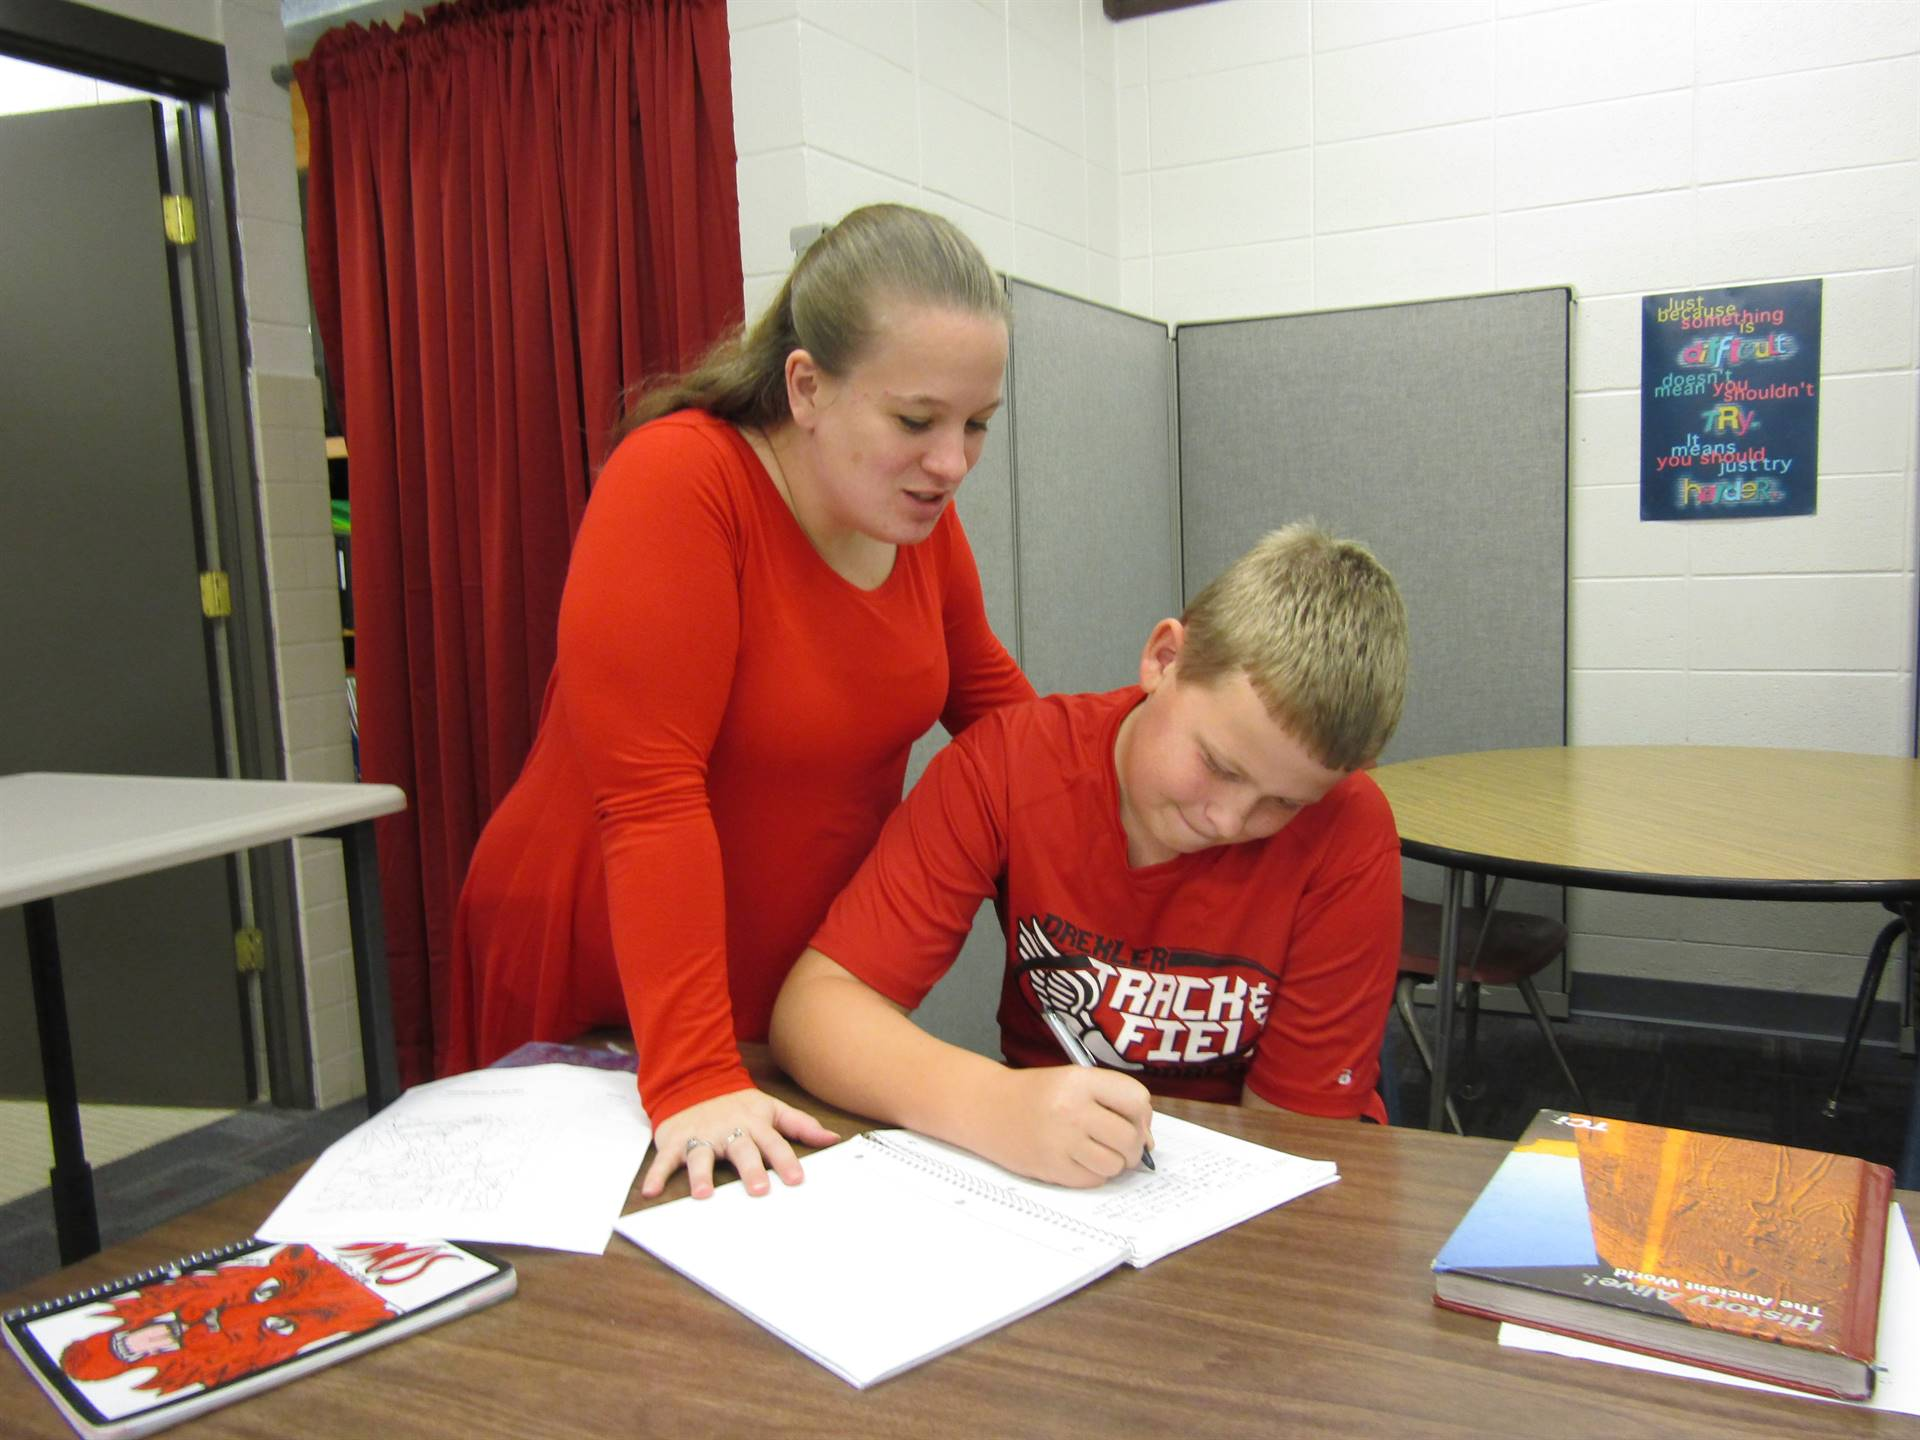 Drexler Middle Intermediate School student recieves instruction for homework